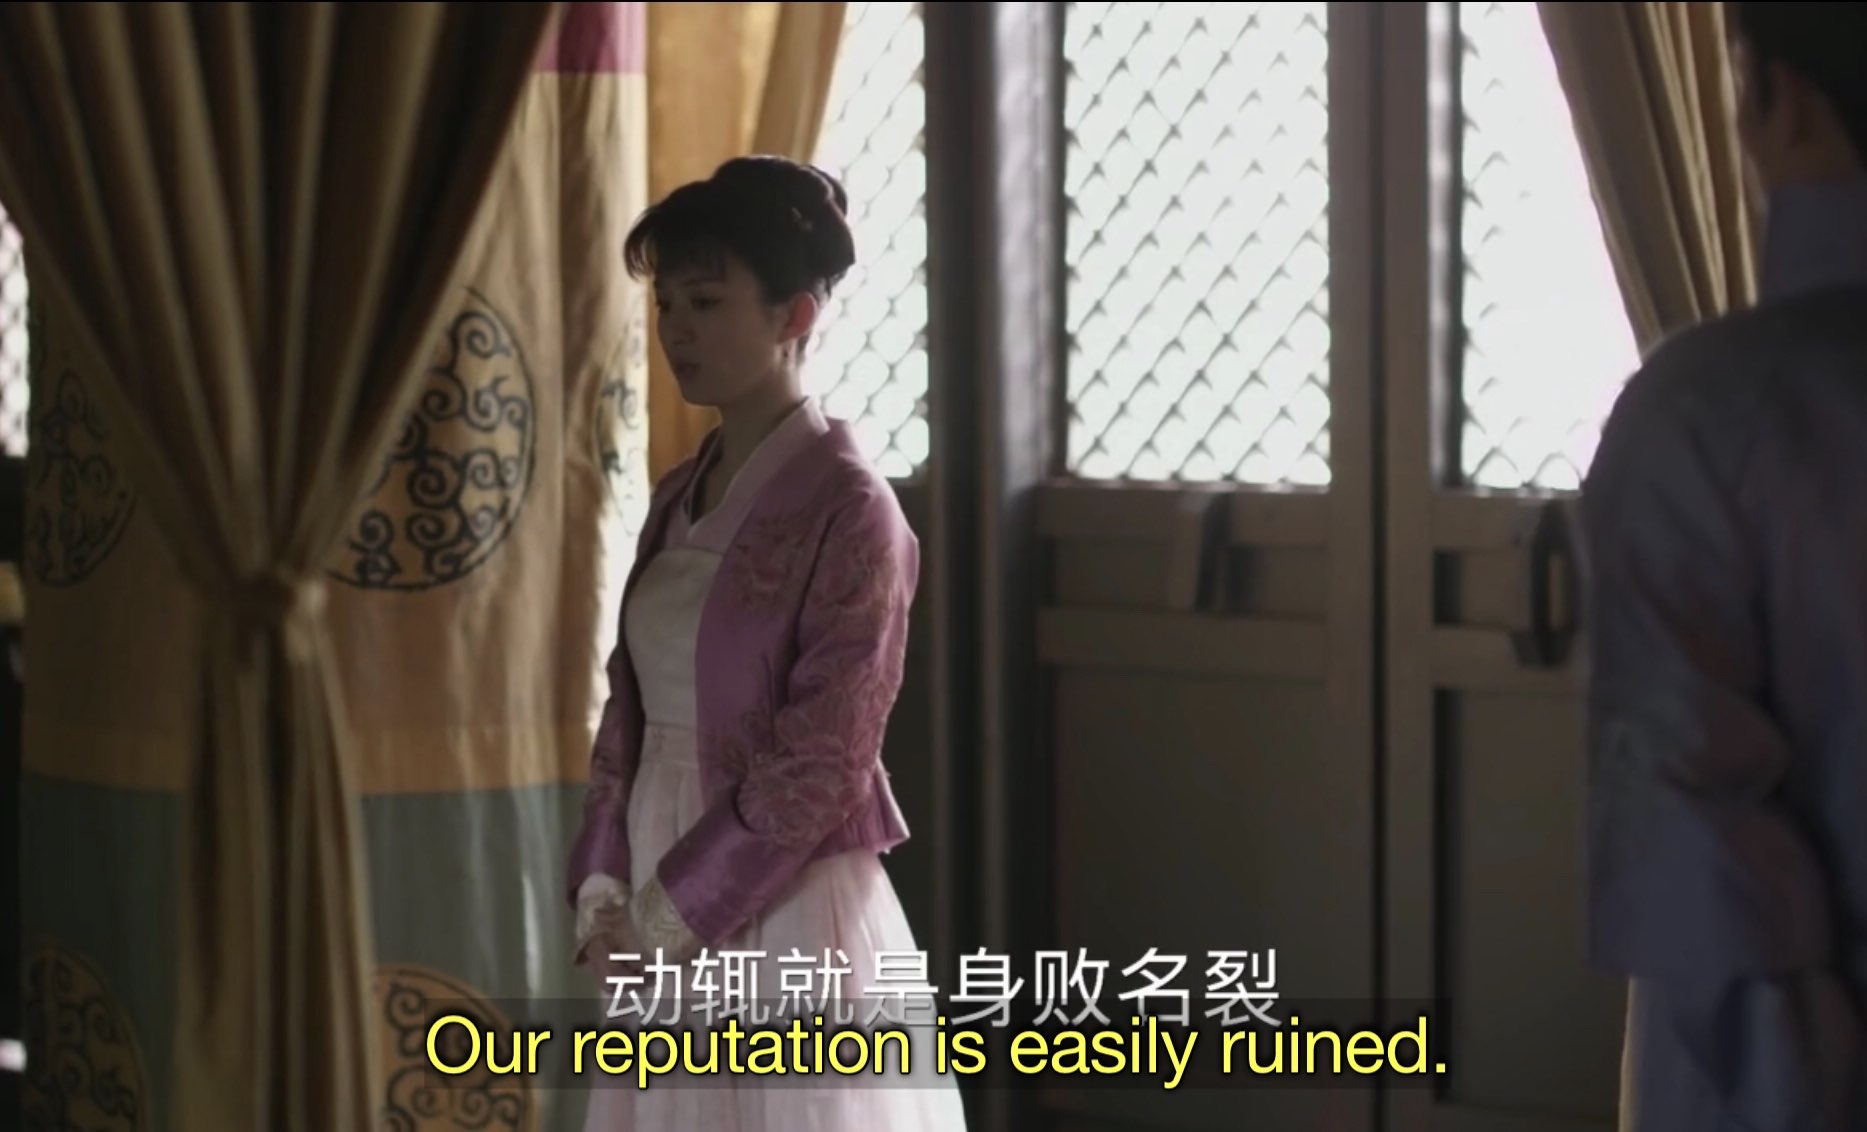 Ming Lan, kneeling, says: Our Reputation is easily ruined.